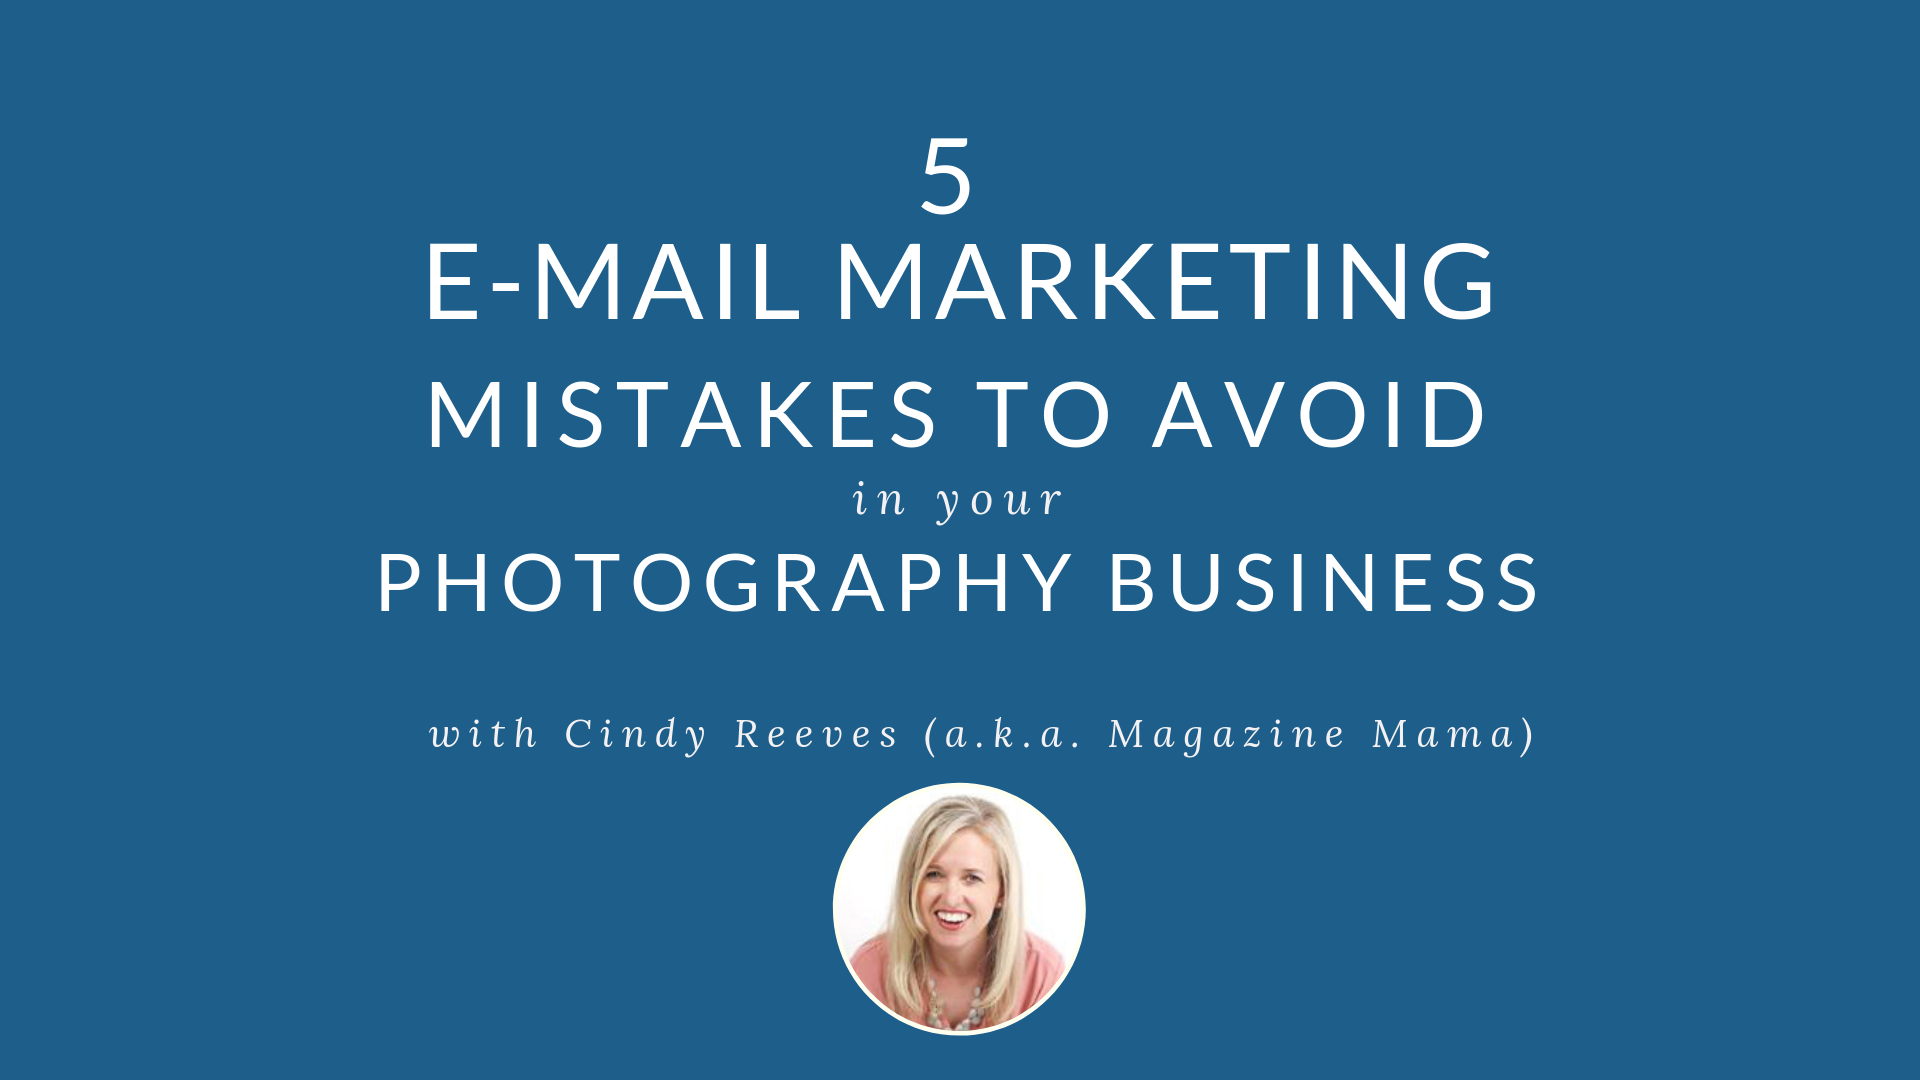 5 EMAIL MARKETING MISTAKES PHOTOGRAPHERS MAKE